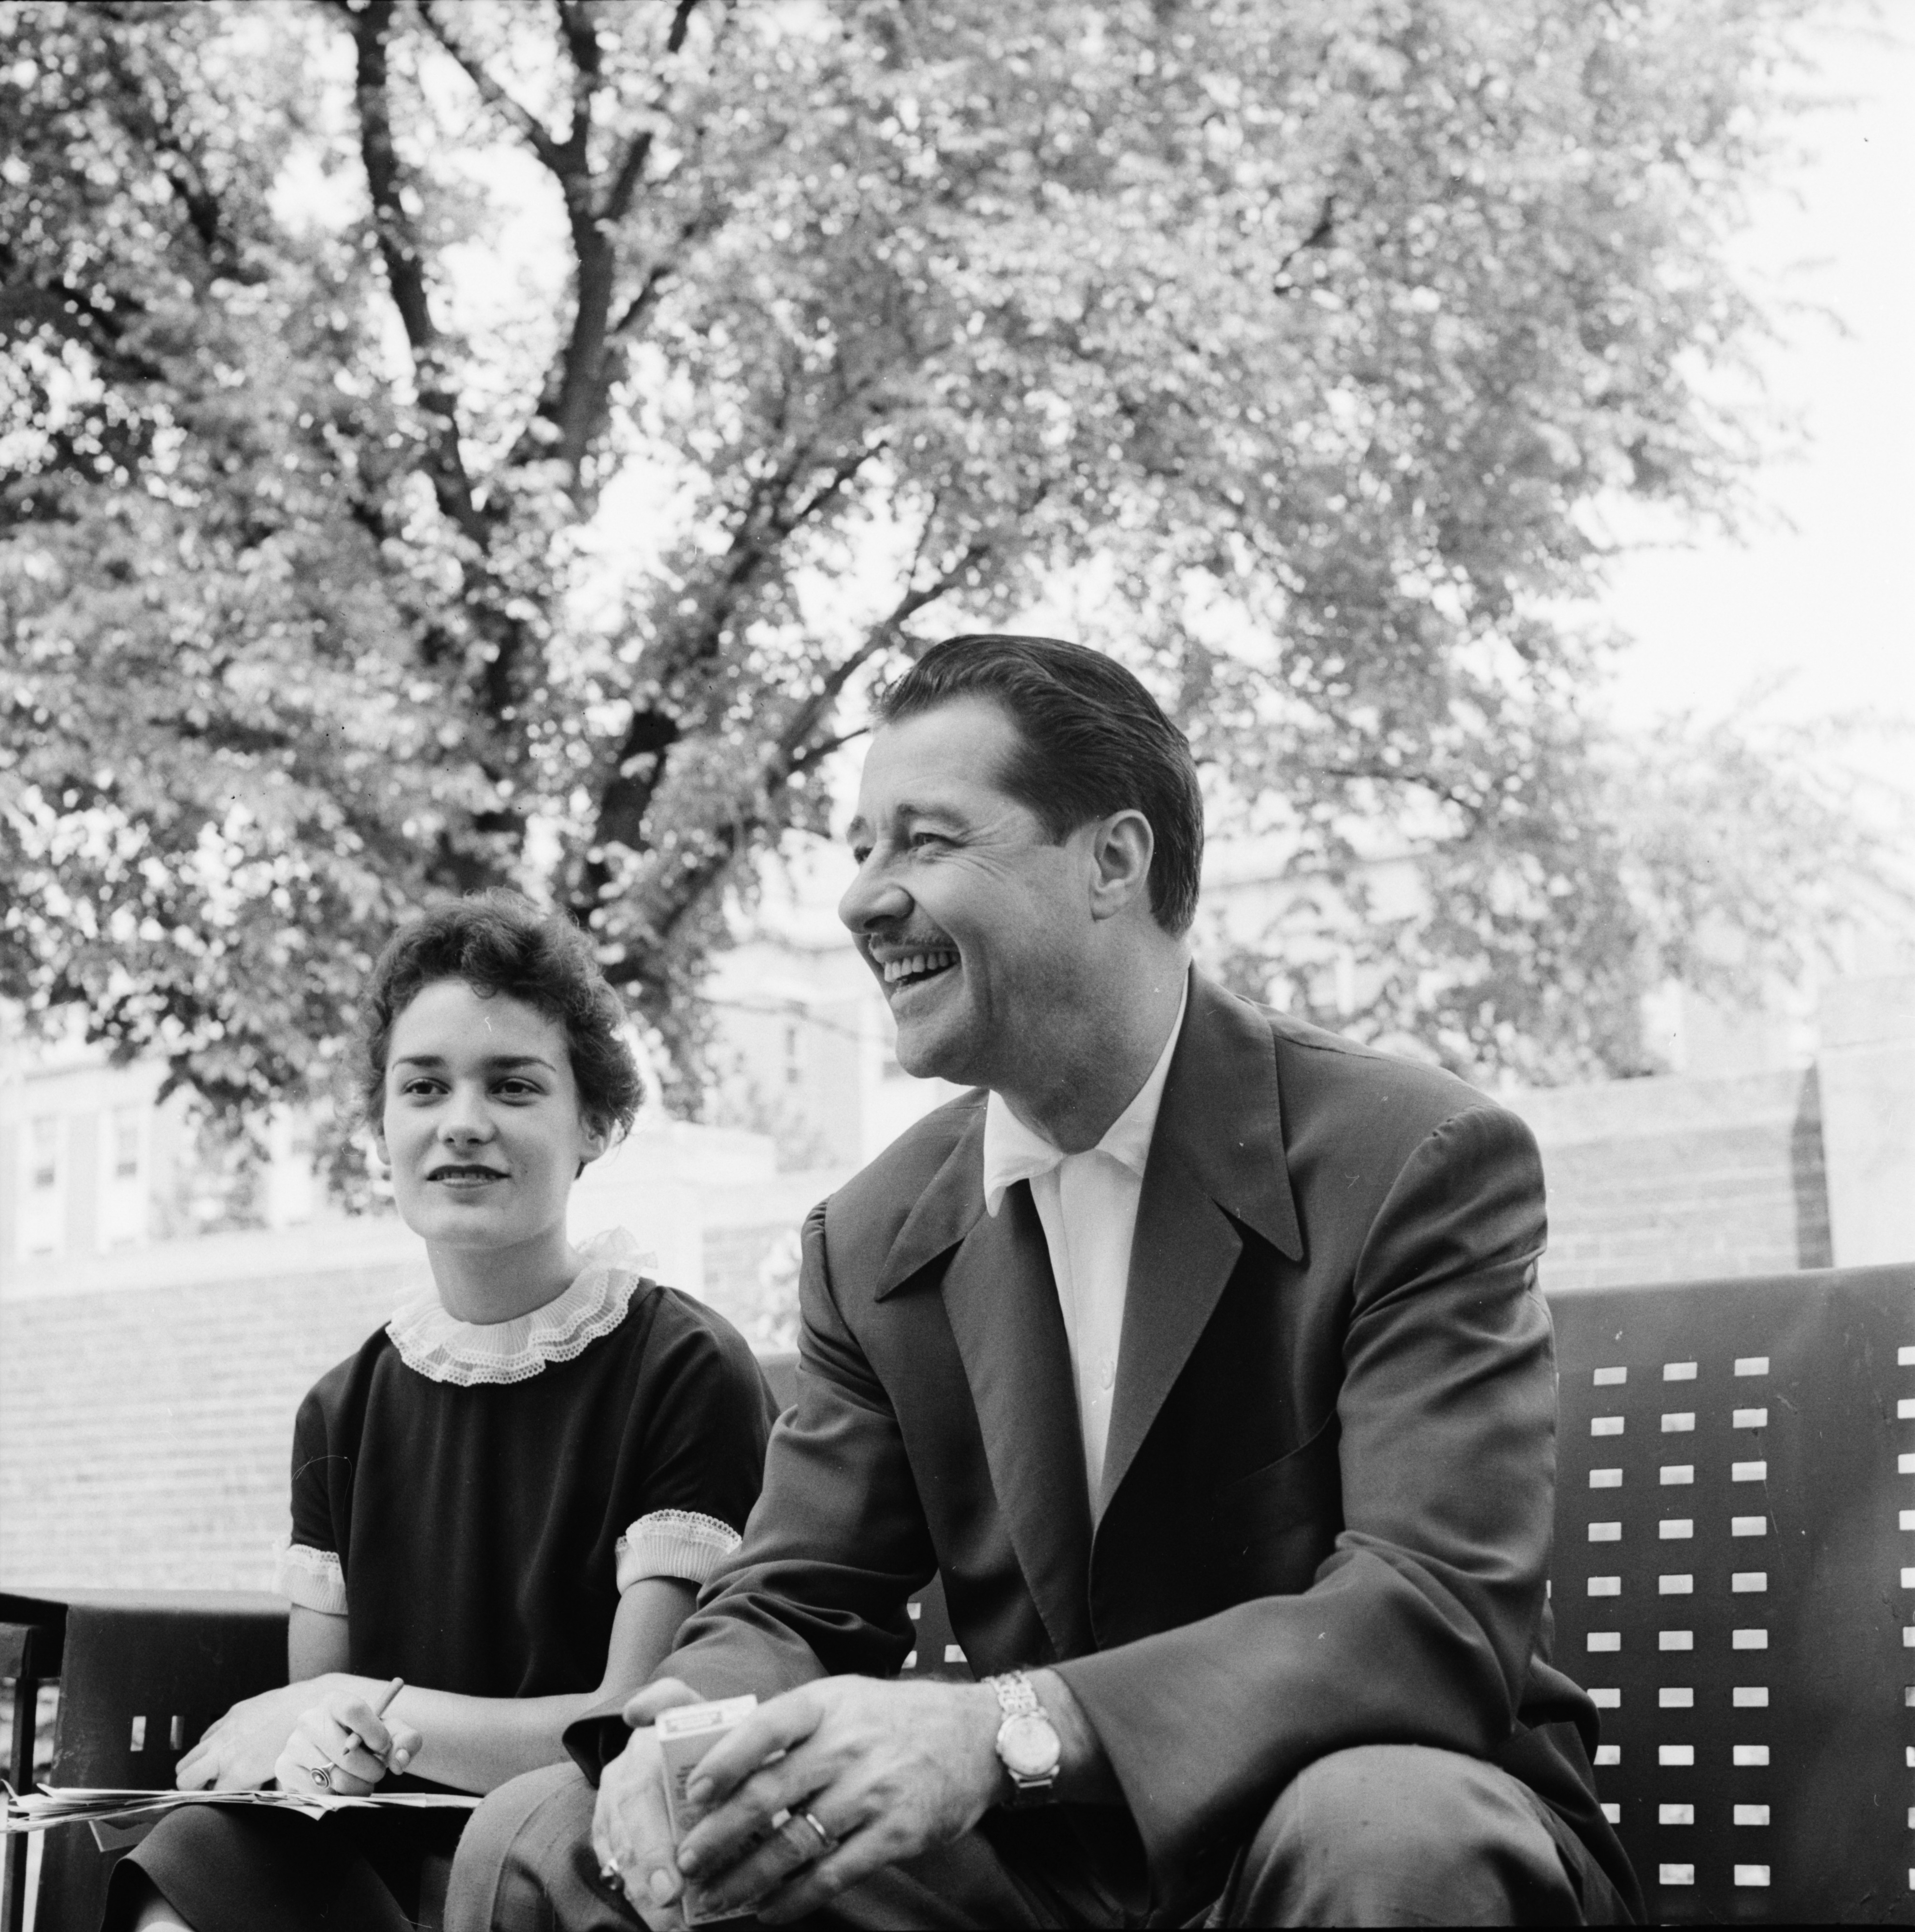 Actor Don Ameche in Ann Arbor for Drama Festival, June 1958 image